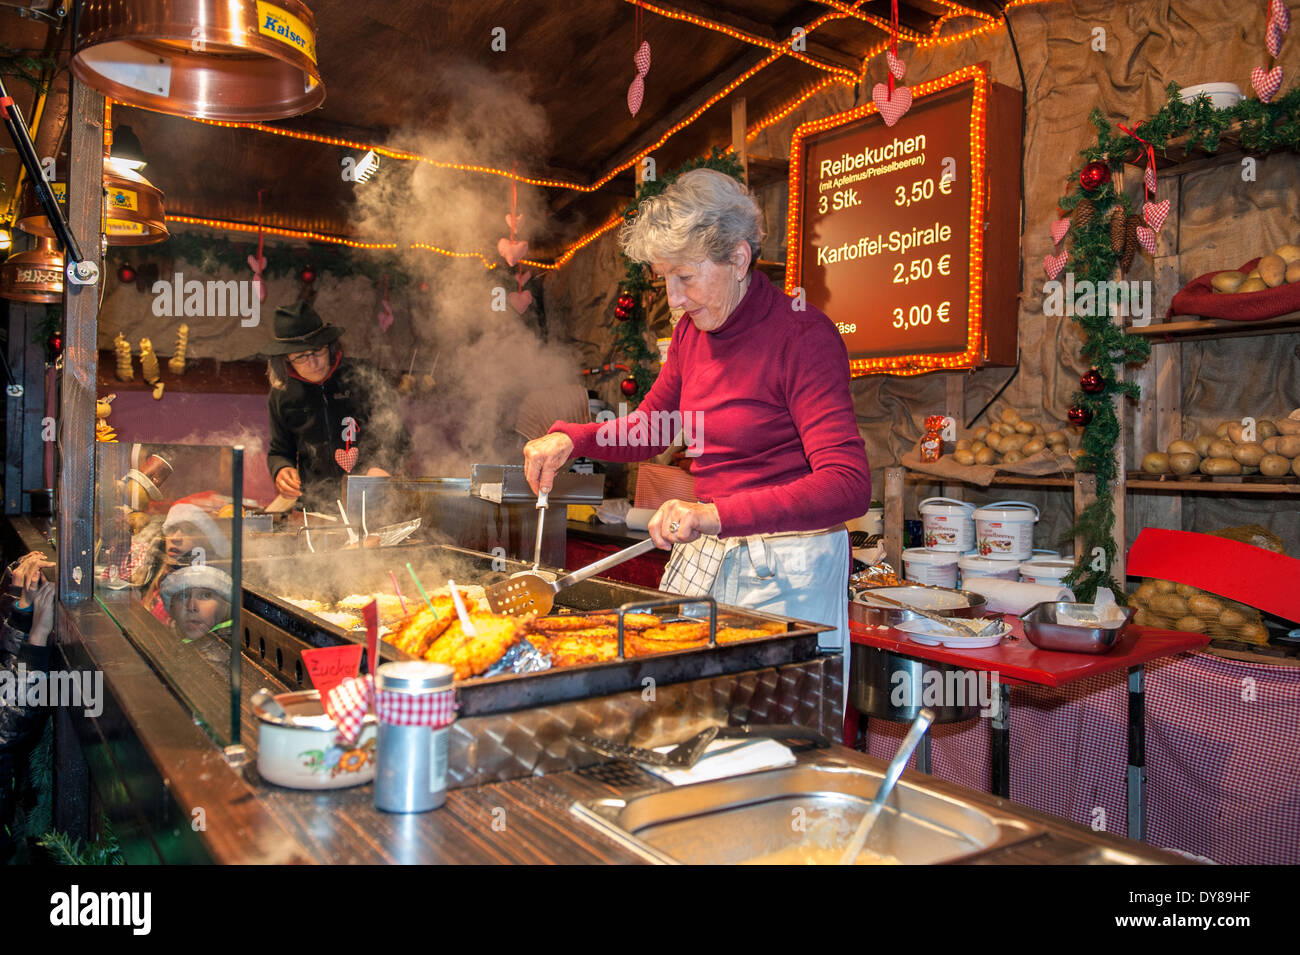 Sip, shop, & savor the season at the German Christmas market located in downtown Denver on the 16th Street Mall. Live entertainment, delicious cuisine, drinks, and fun for the whole family! Open annually from the Friday before Thanksgiving to December 23rd; beginning at am daily!